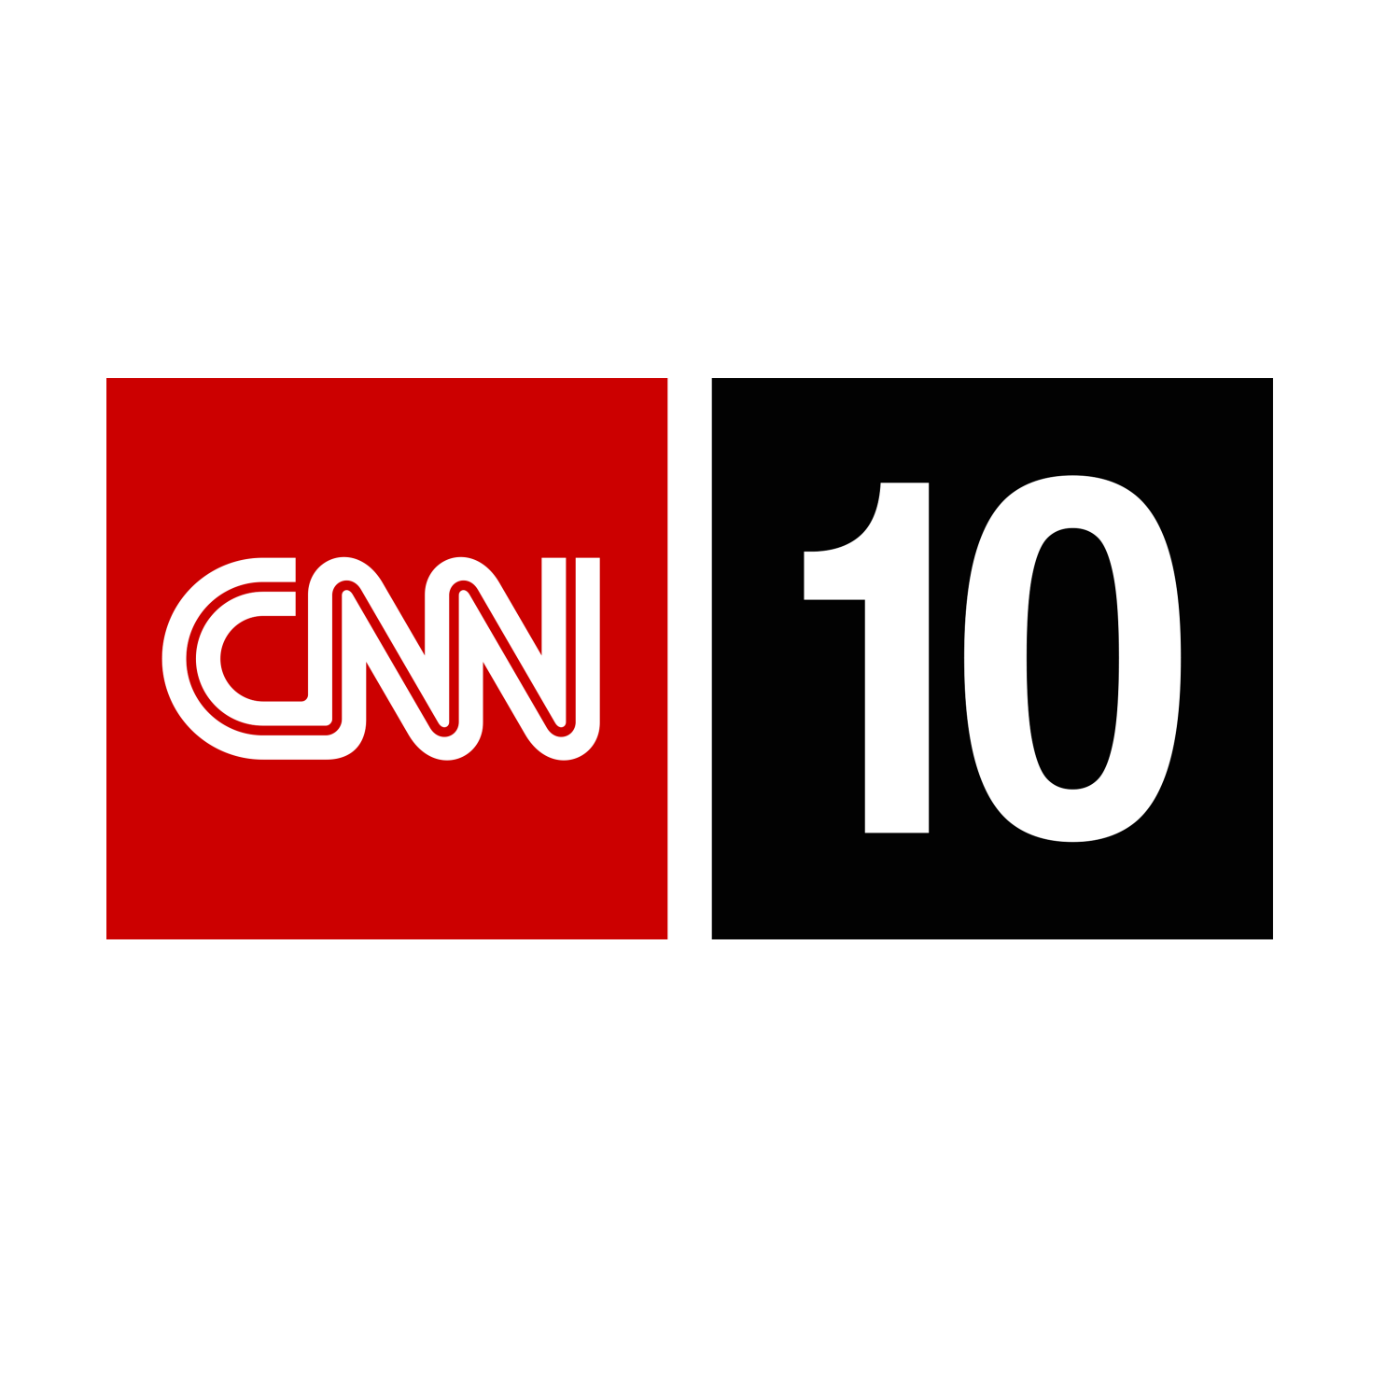 CNN Student News - March 18, 2013